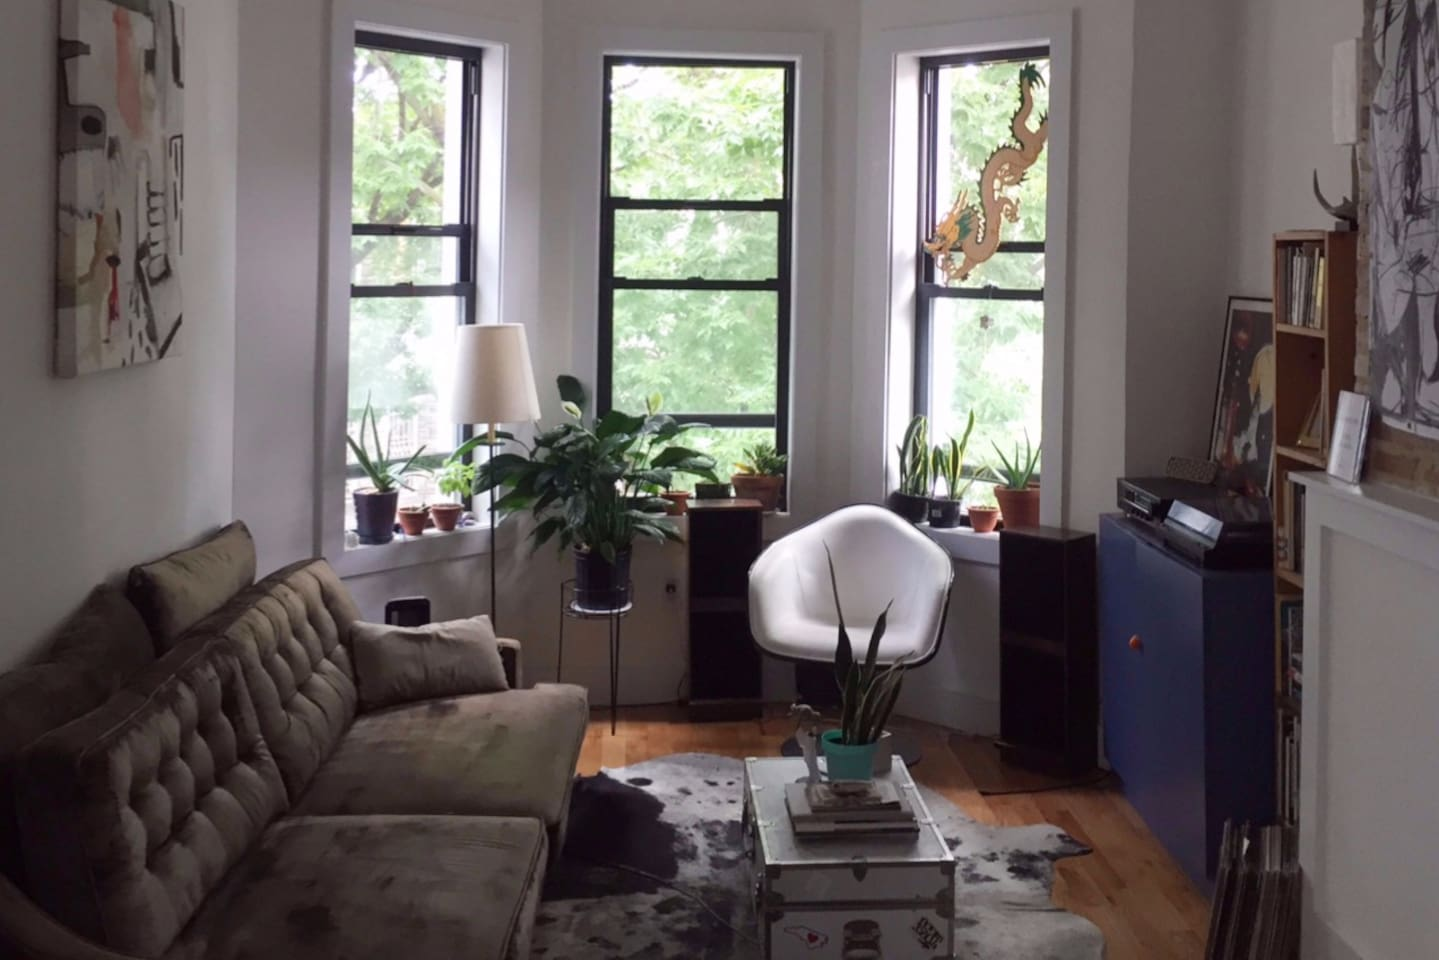 Bright living room with many happy plants and cozy seating